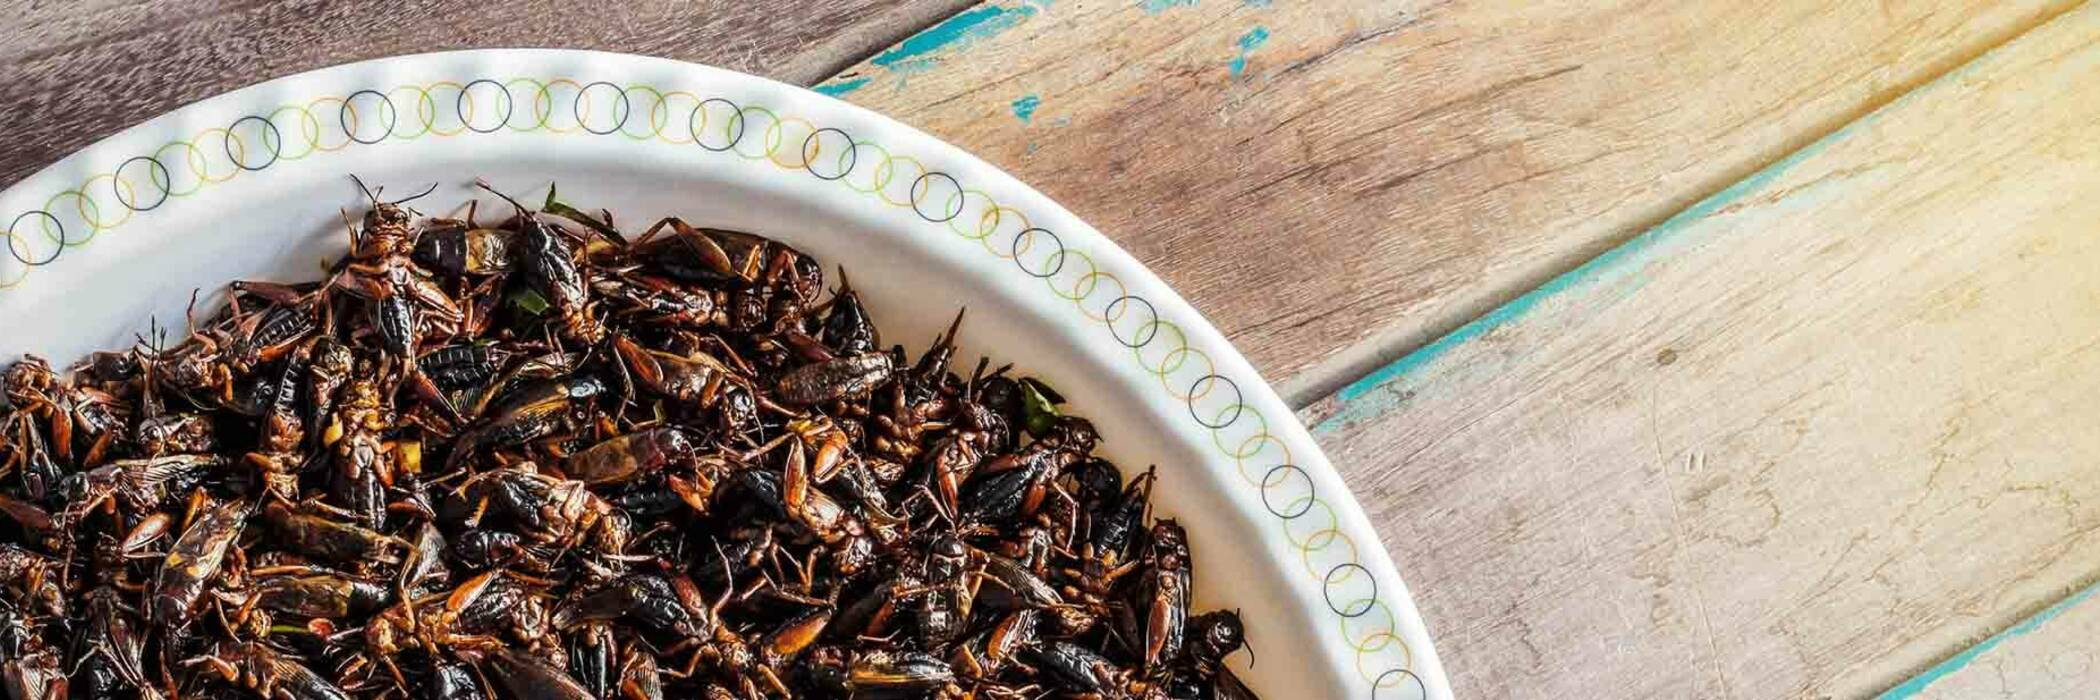 Plate of insects as alternative protein.